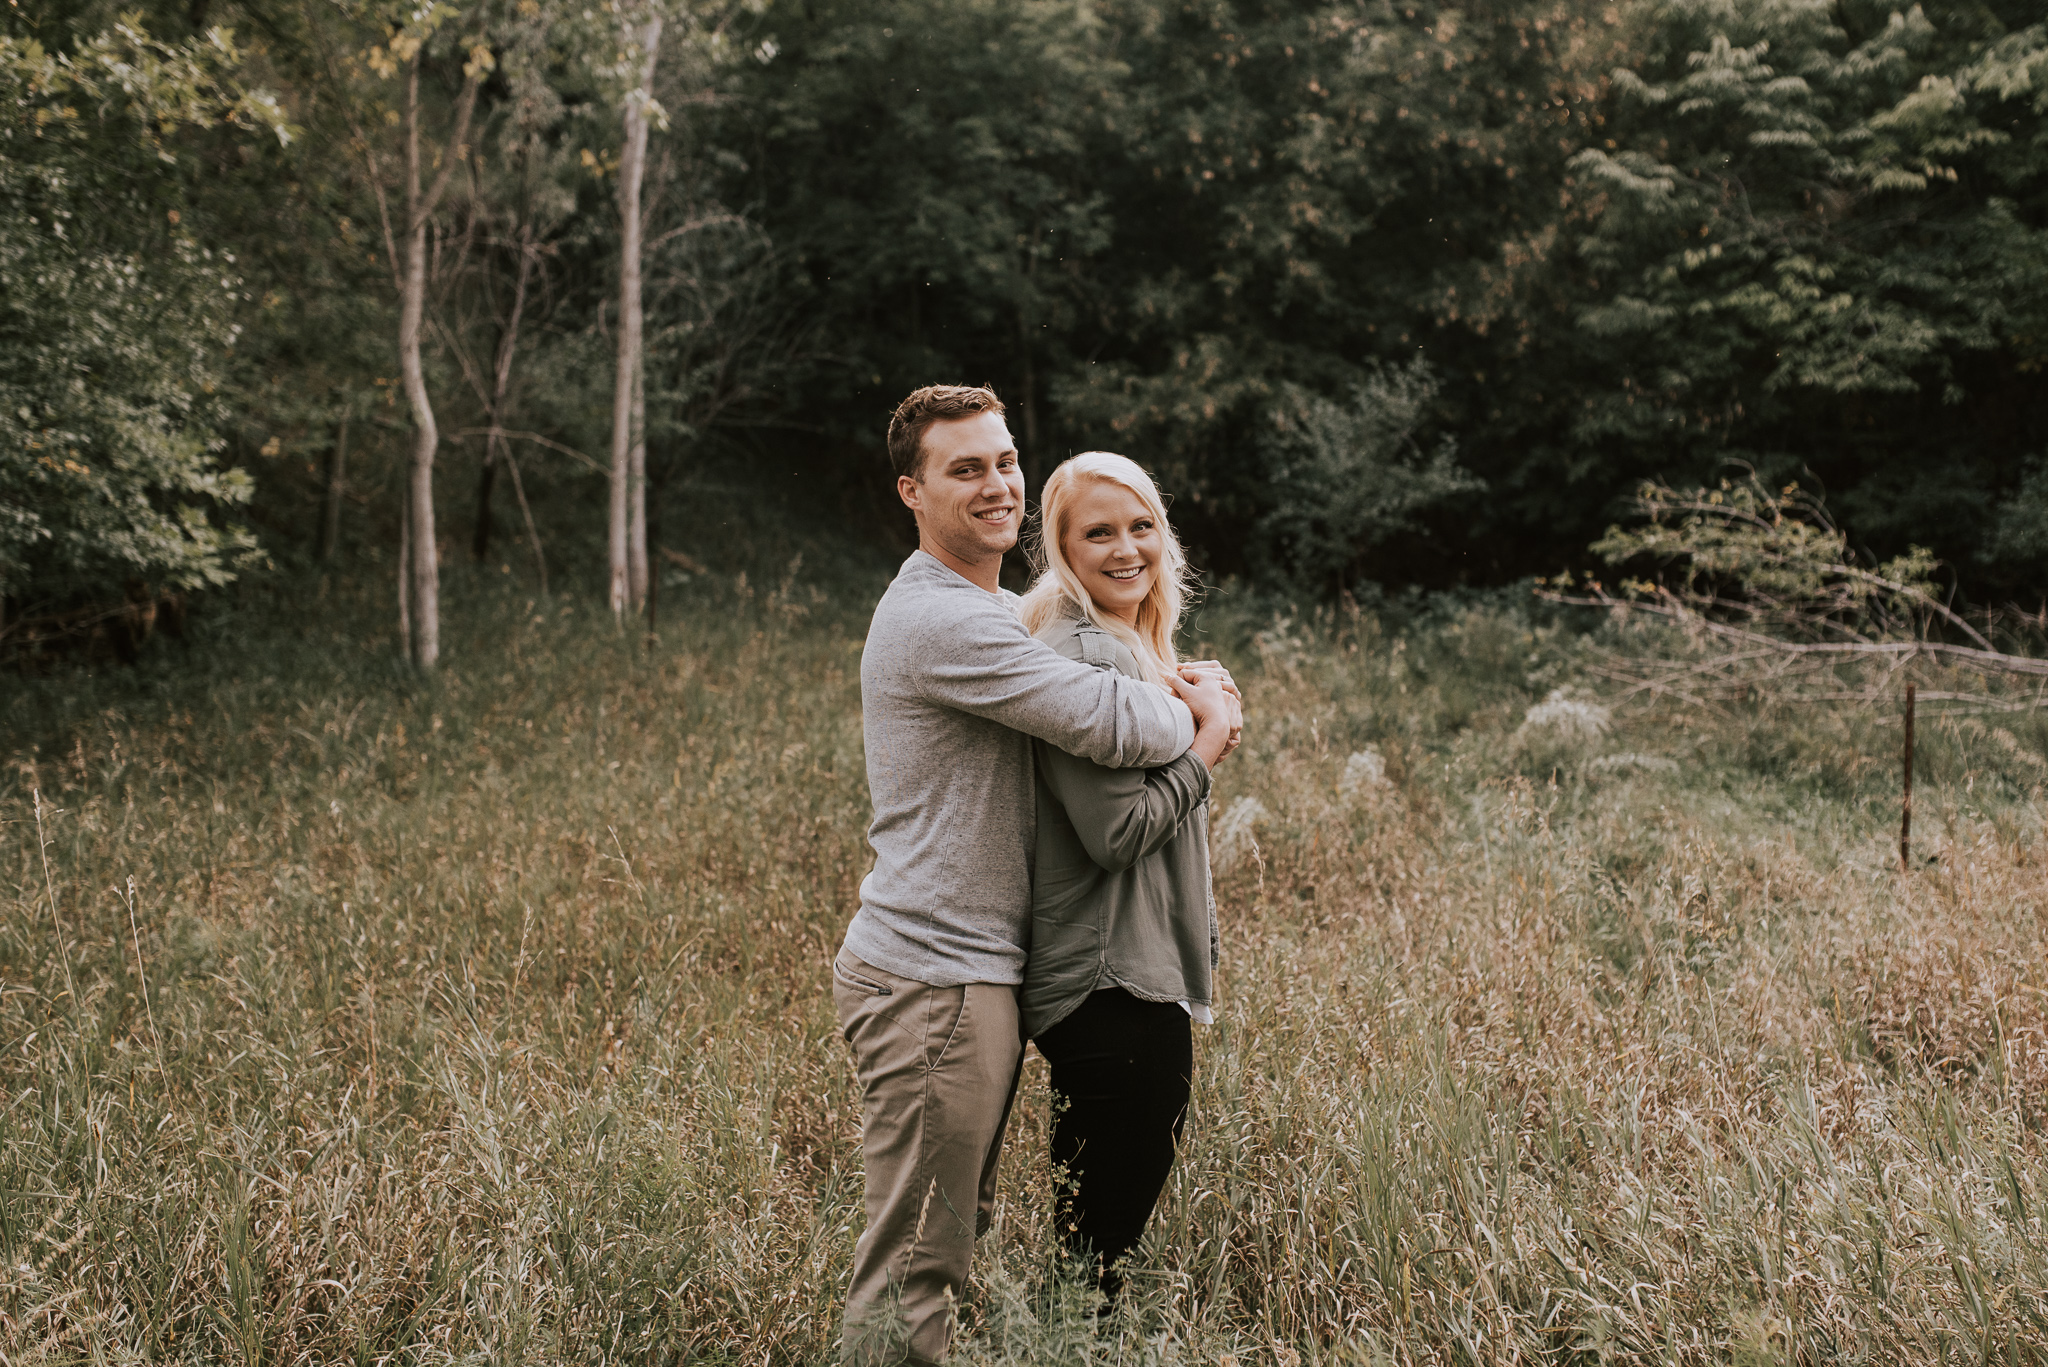 fort-lincoln-state-park-engagement-wedding-photography-1.jpg